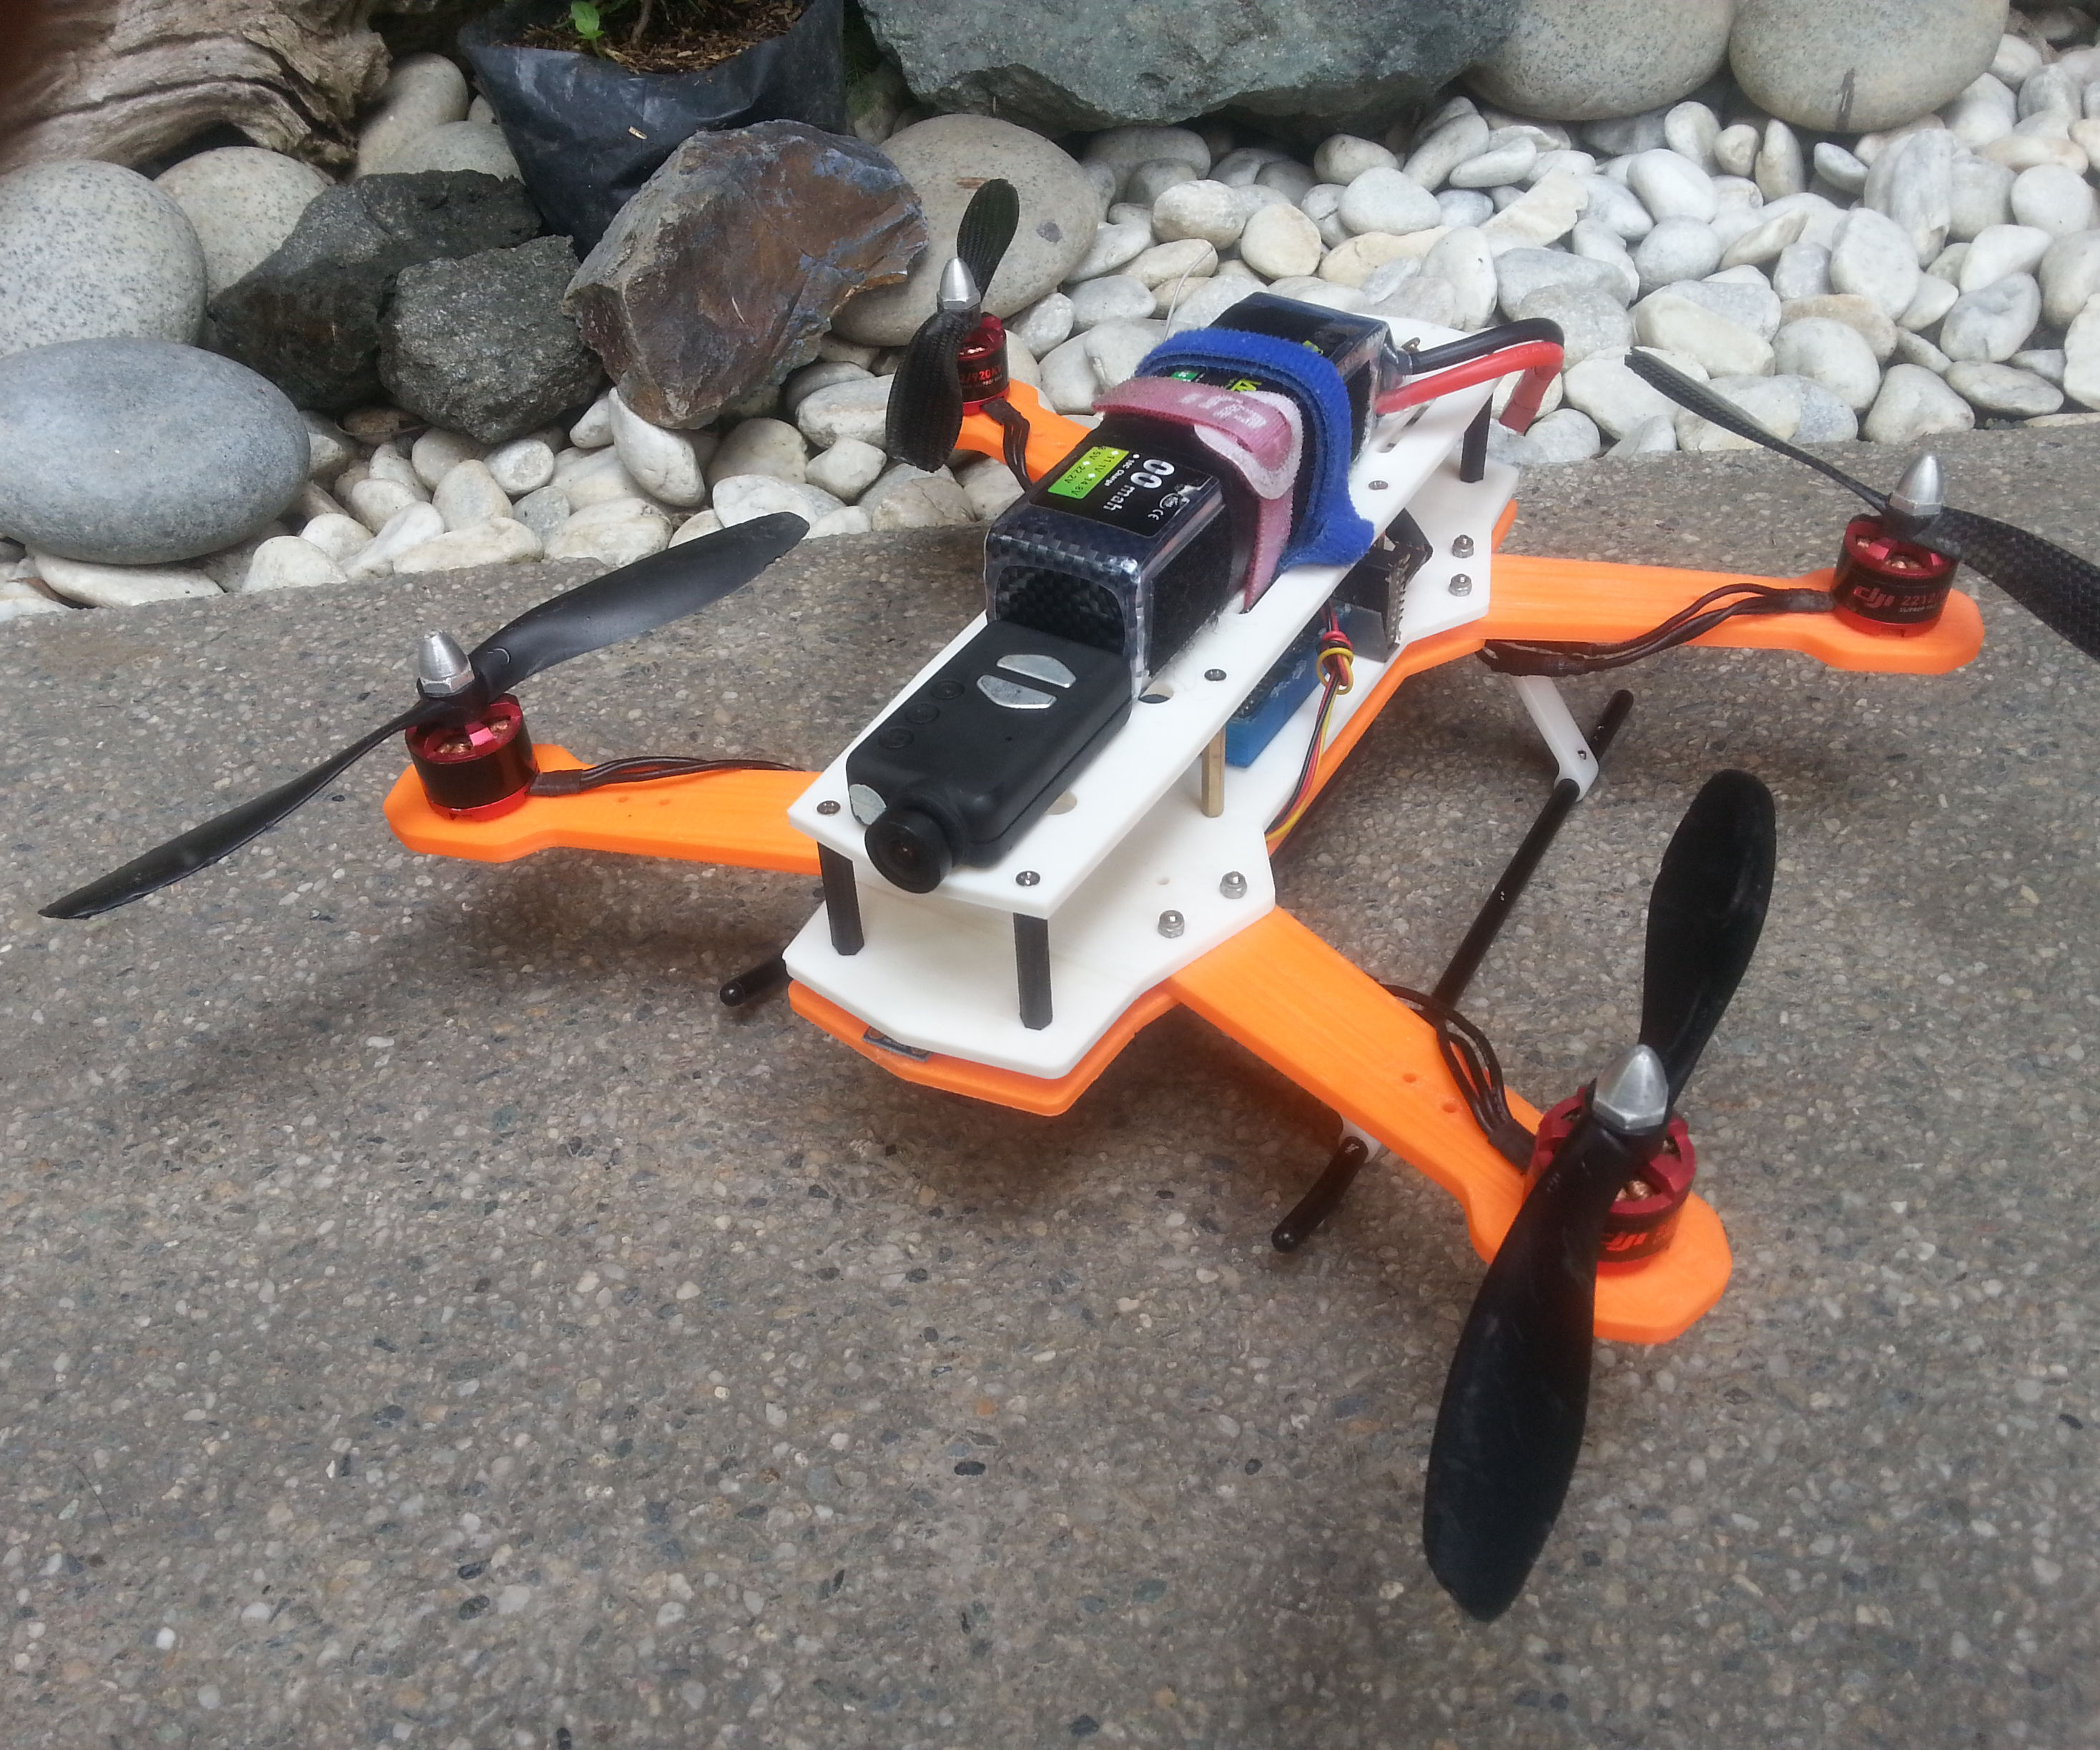 Make an H Quadcopter with 3D printing